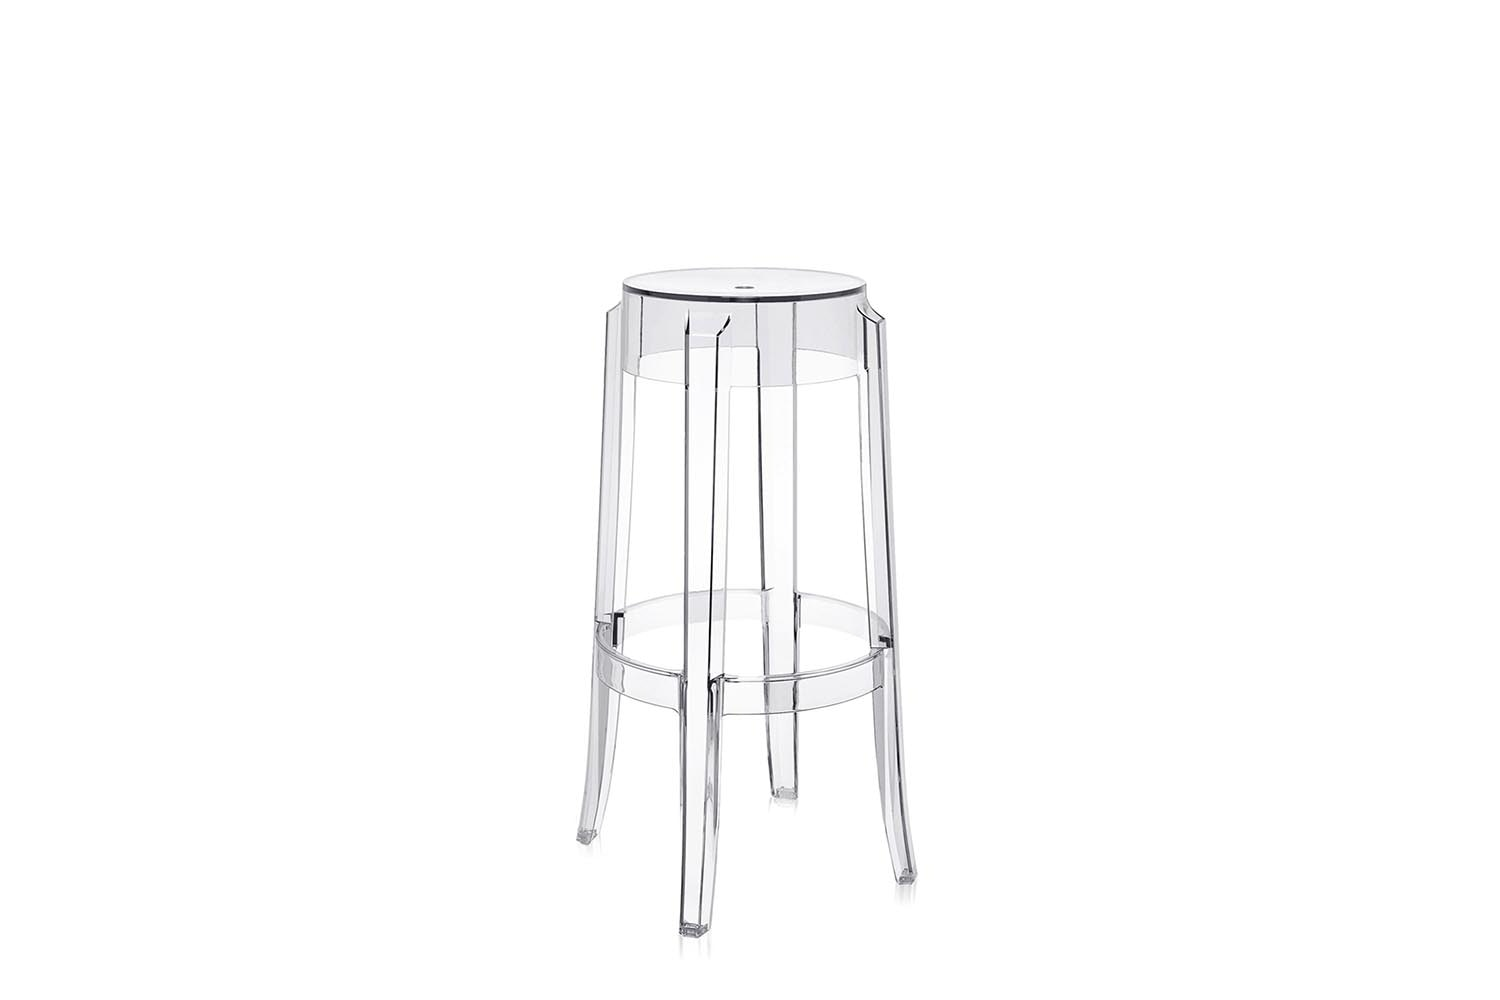 Charles Ghost High Stool by Philippe Starck for Kartell